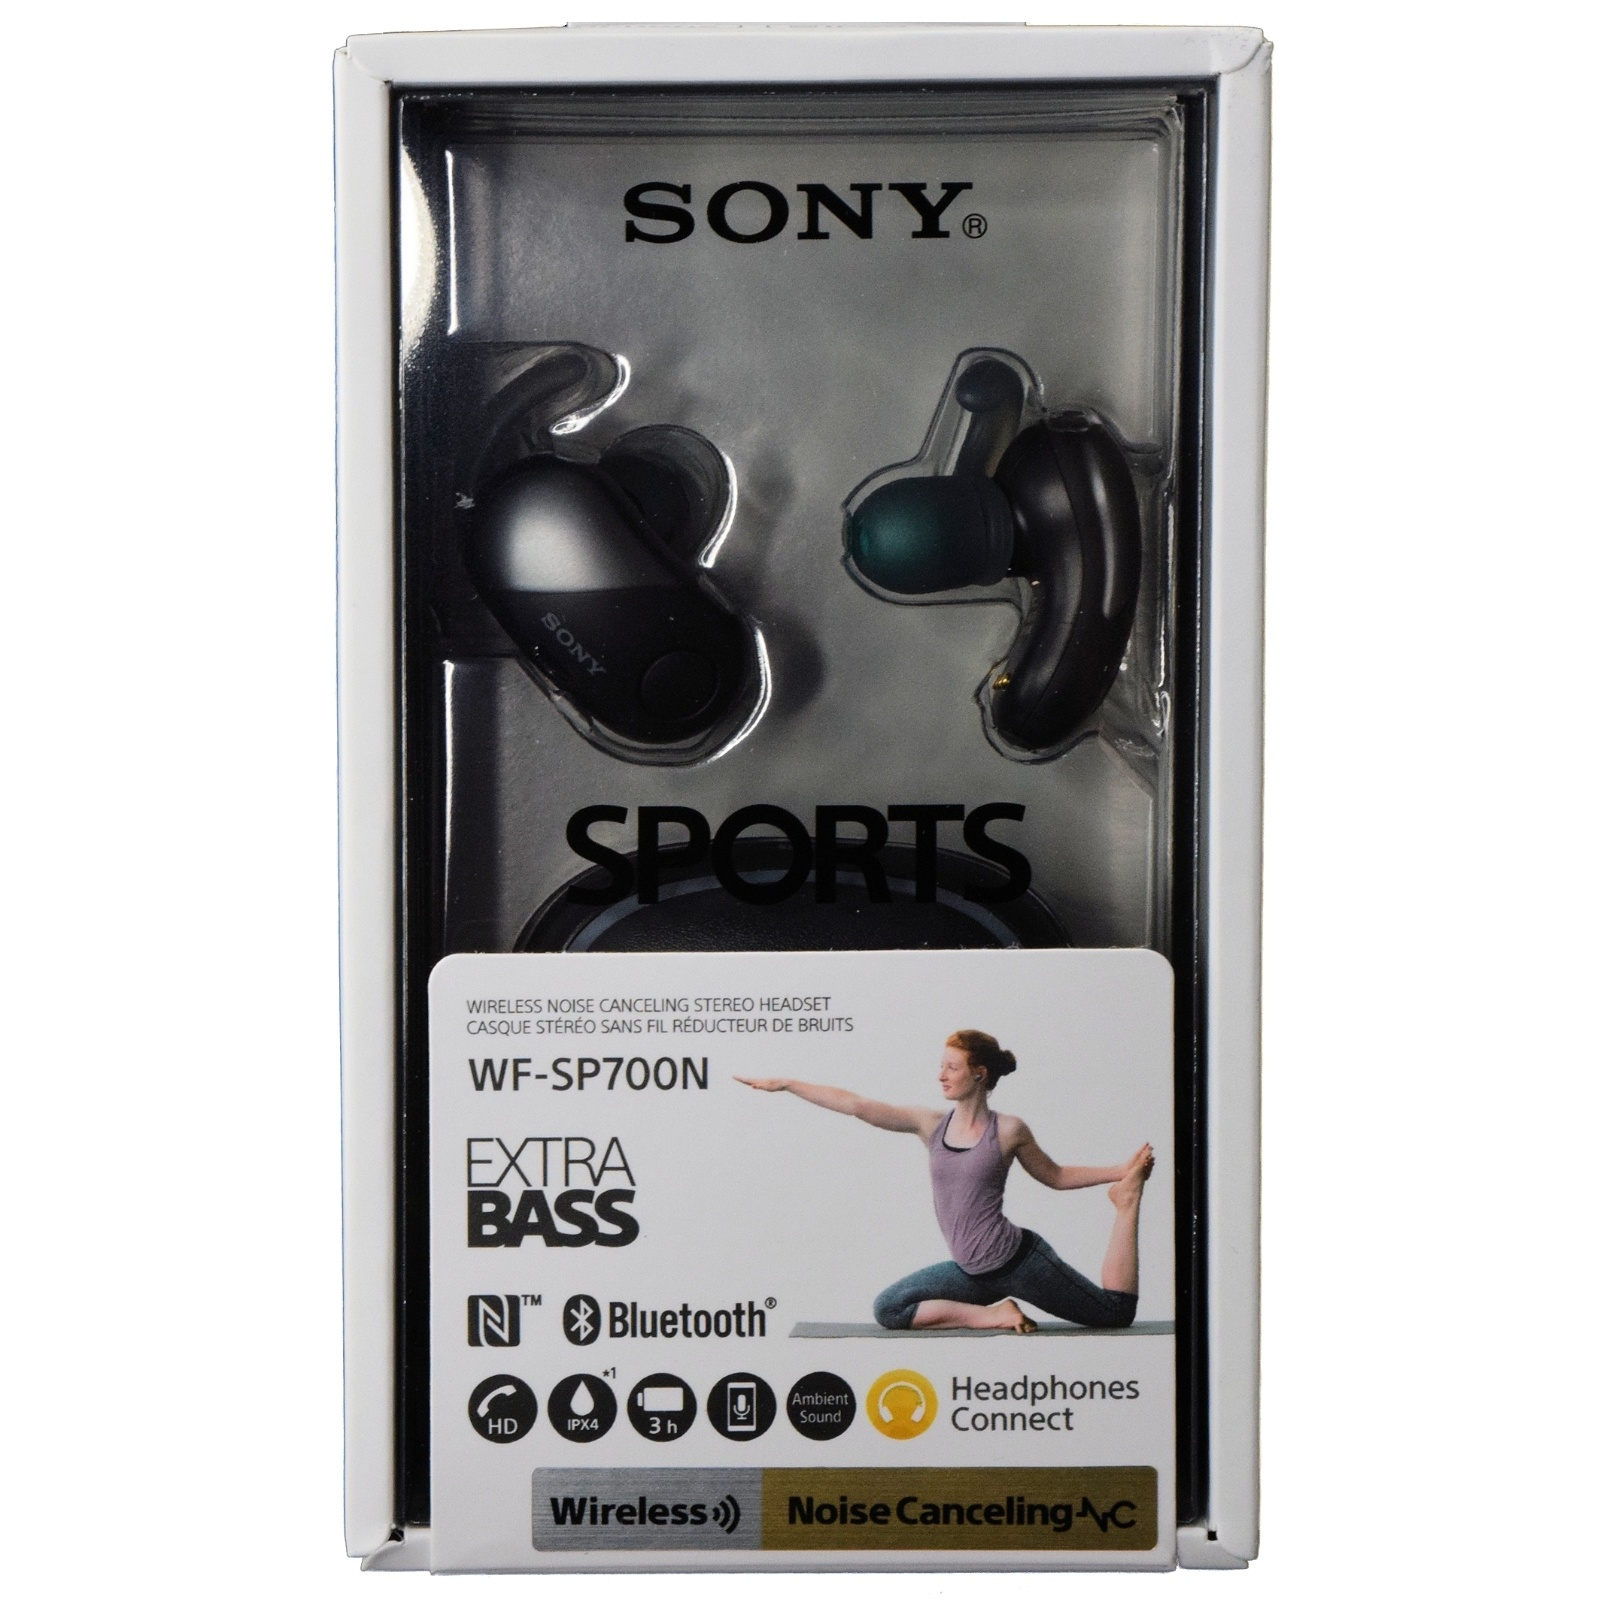 1a603c91483 fit to viewer. prev next. Sony WF-SP700N Sports True Wireless Noise  Canceling Earbud Headphones - Black